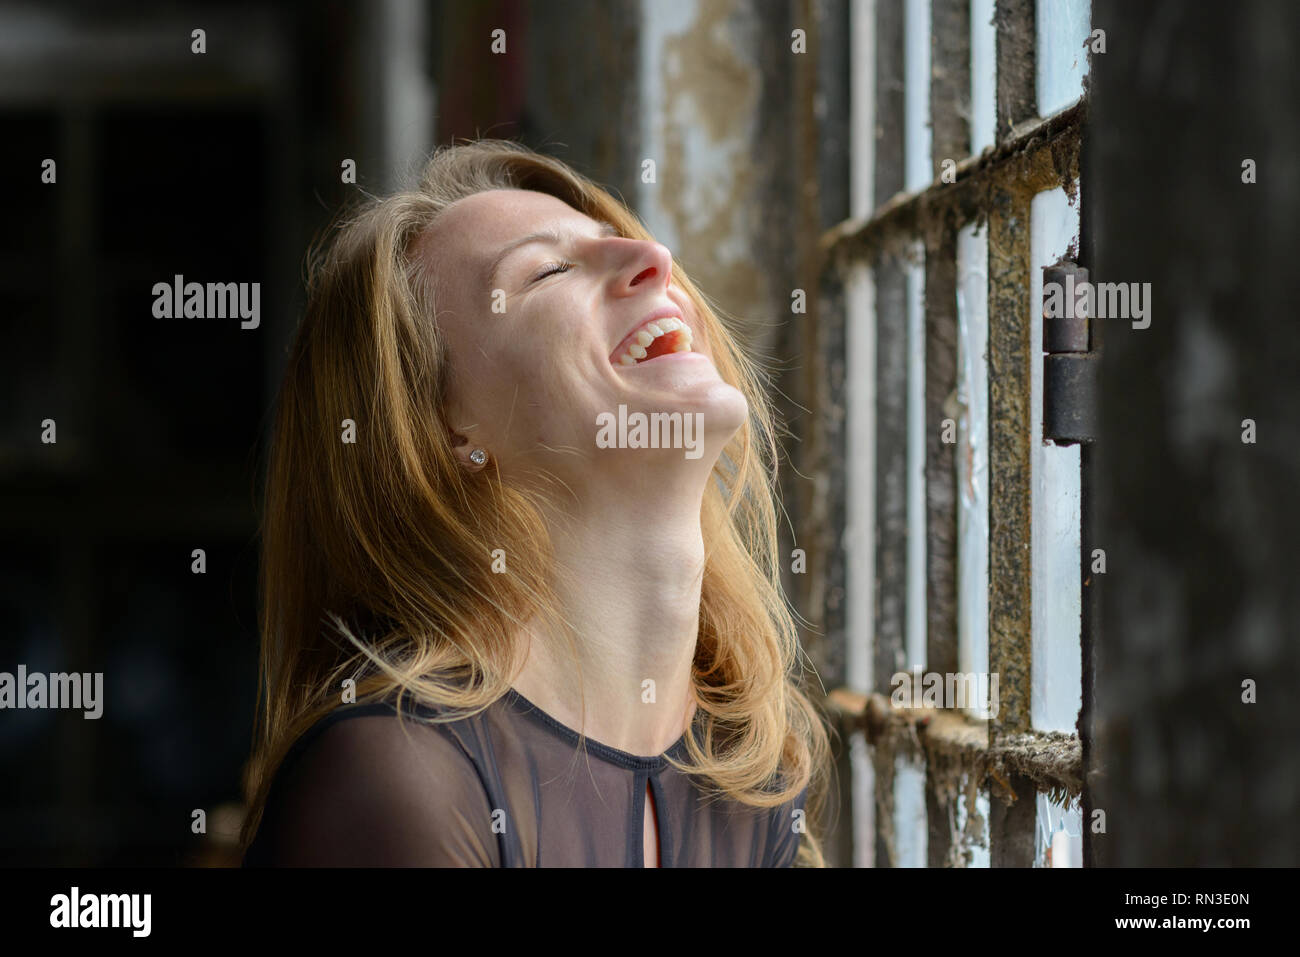 Happy amused young woman enjoying a good laugh with her head thrown back and closed eyes in front of a large rustic window indoors Stock Photo